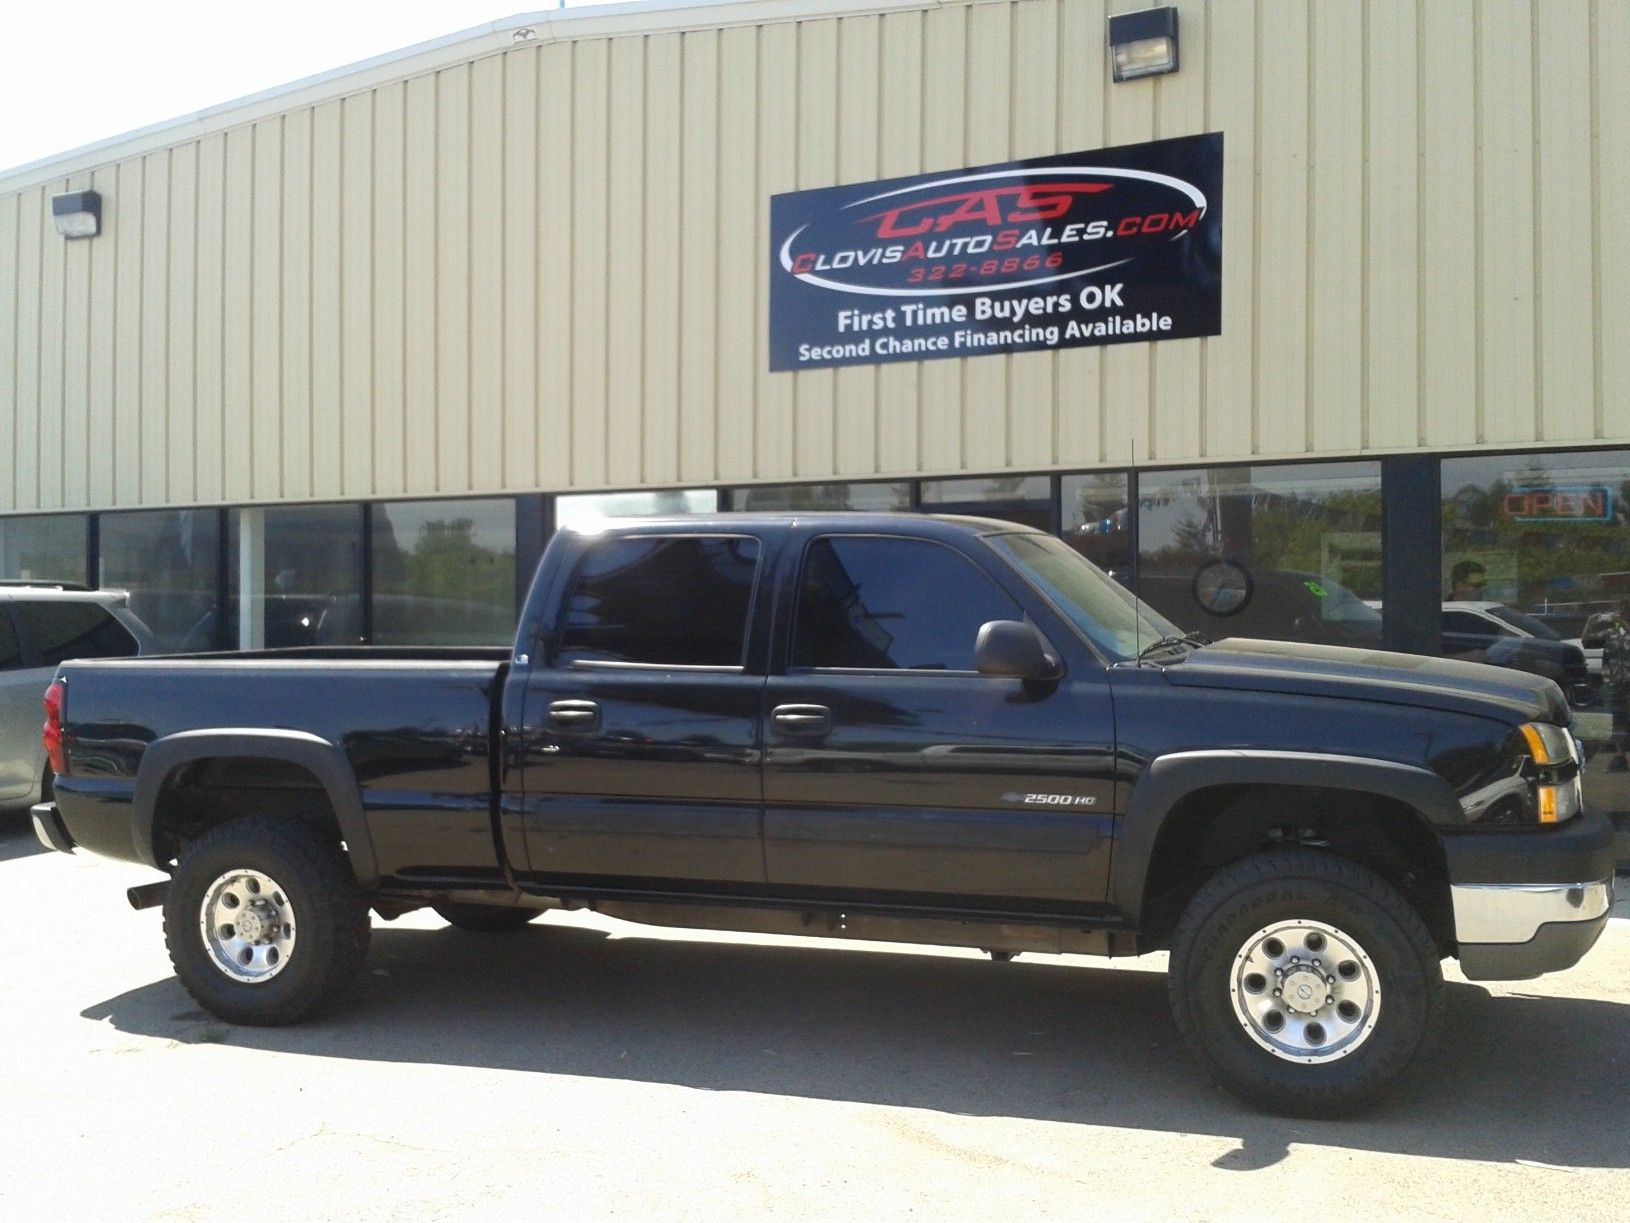 medium resolution of  16 995 2005 chevy silverado 2500hd 4x4 touch screen cd player auxilary hook up 4 inch